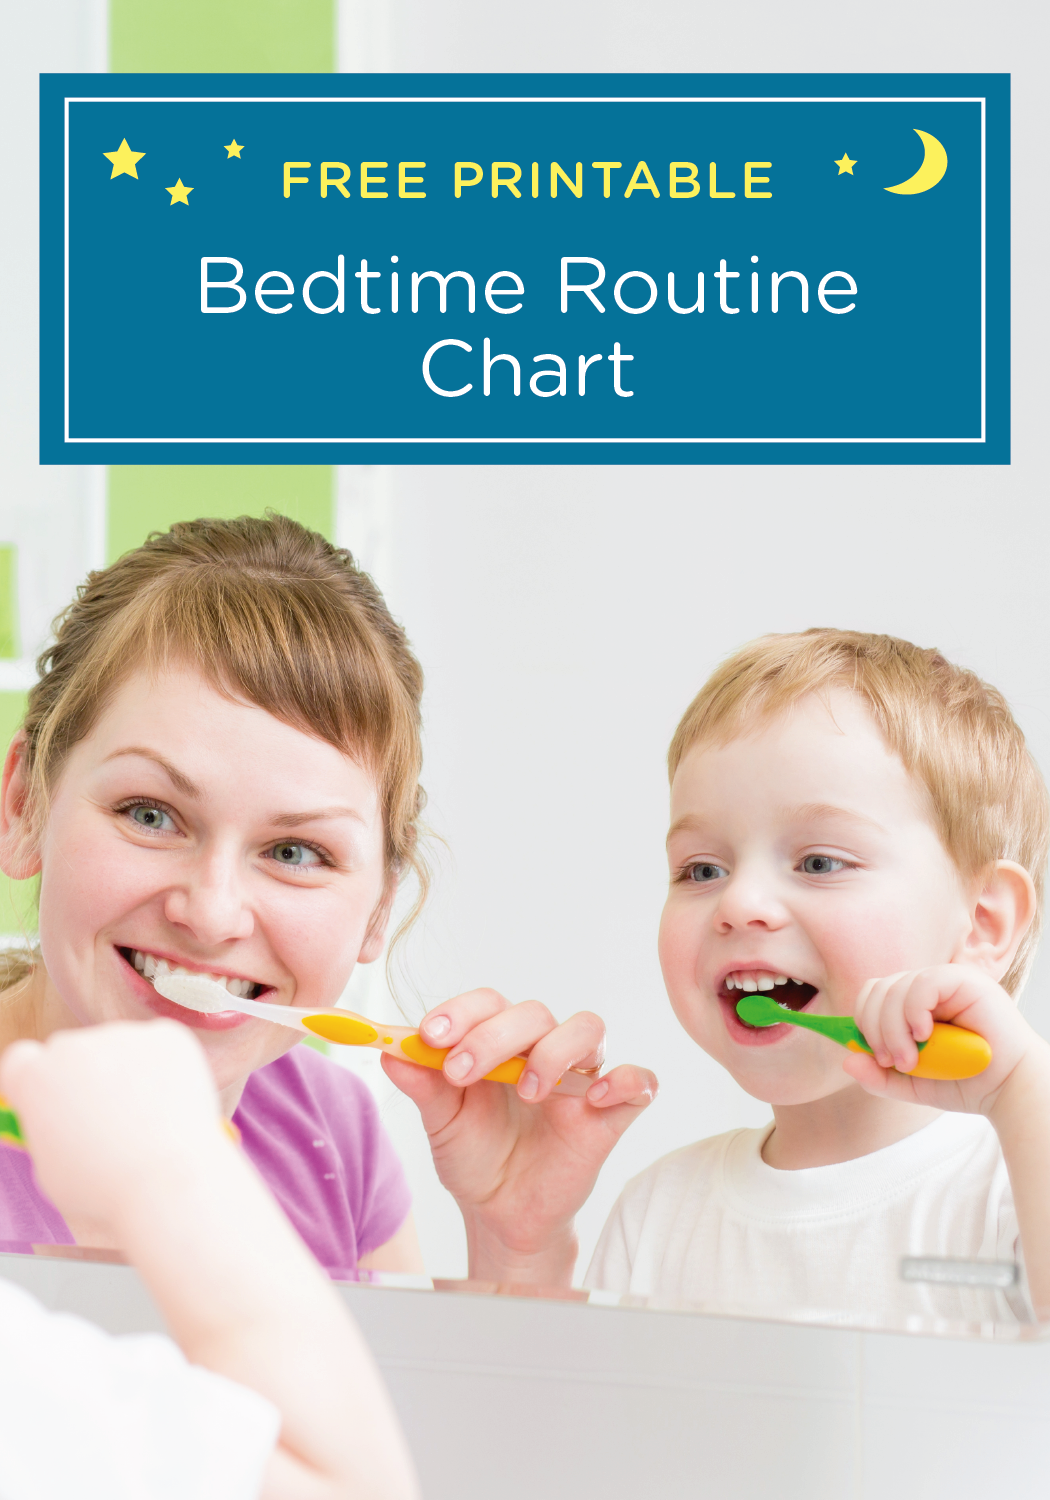 Bedtime Routine Chart The Pleasantest Thing Bed